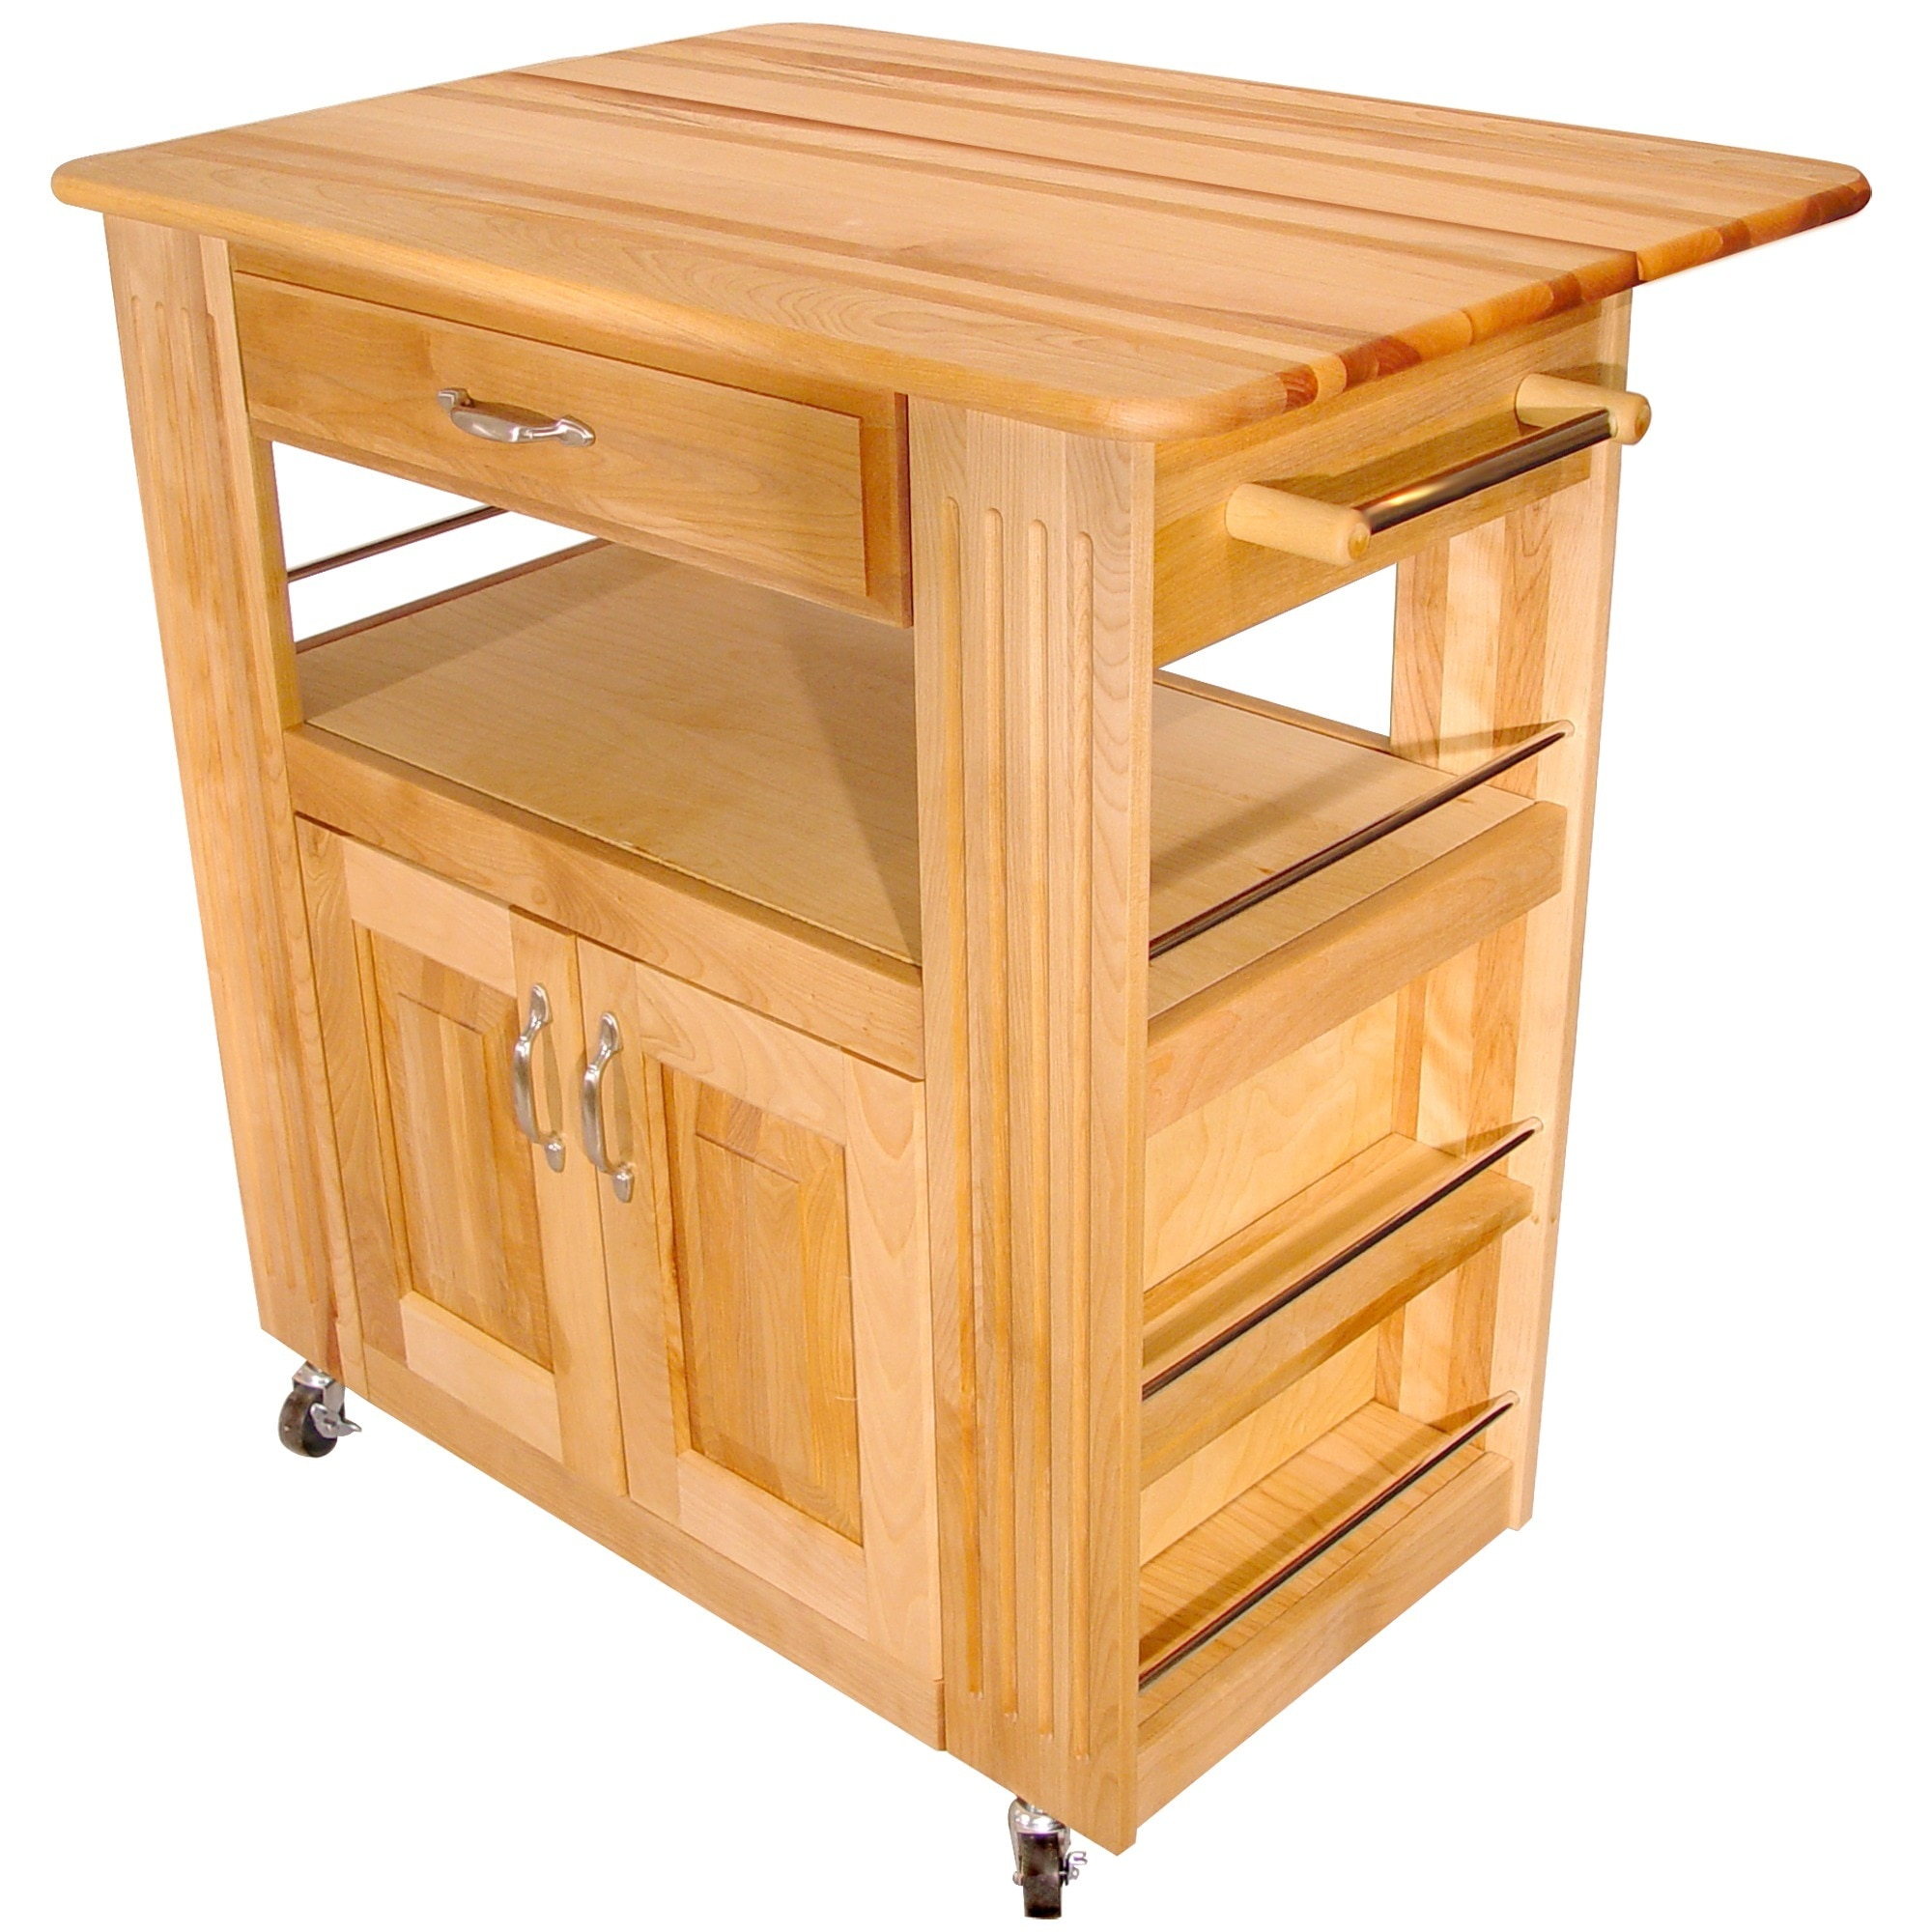 Catskill Craftsman Heart-of-the-Kitchen Island with Drop Leaf